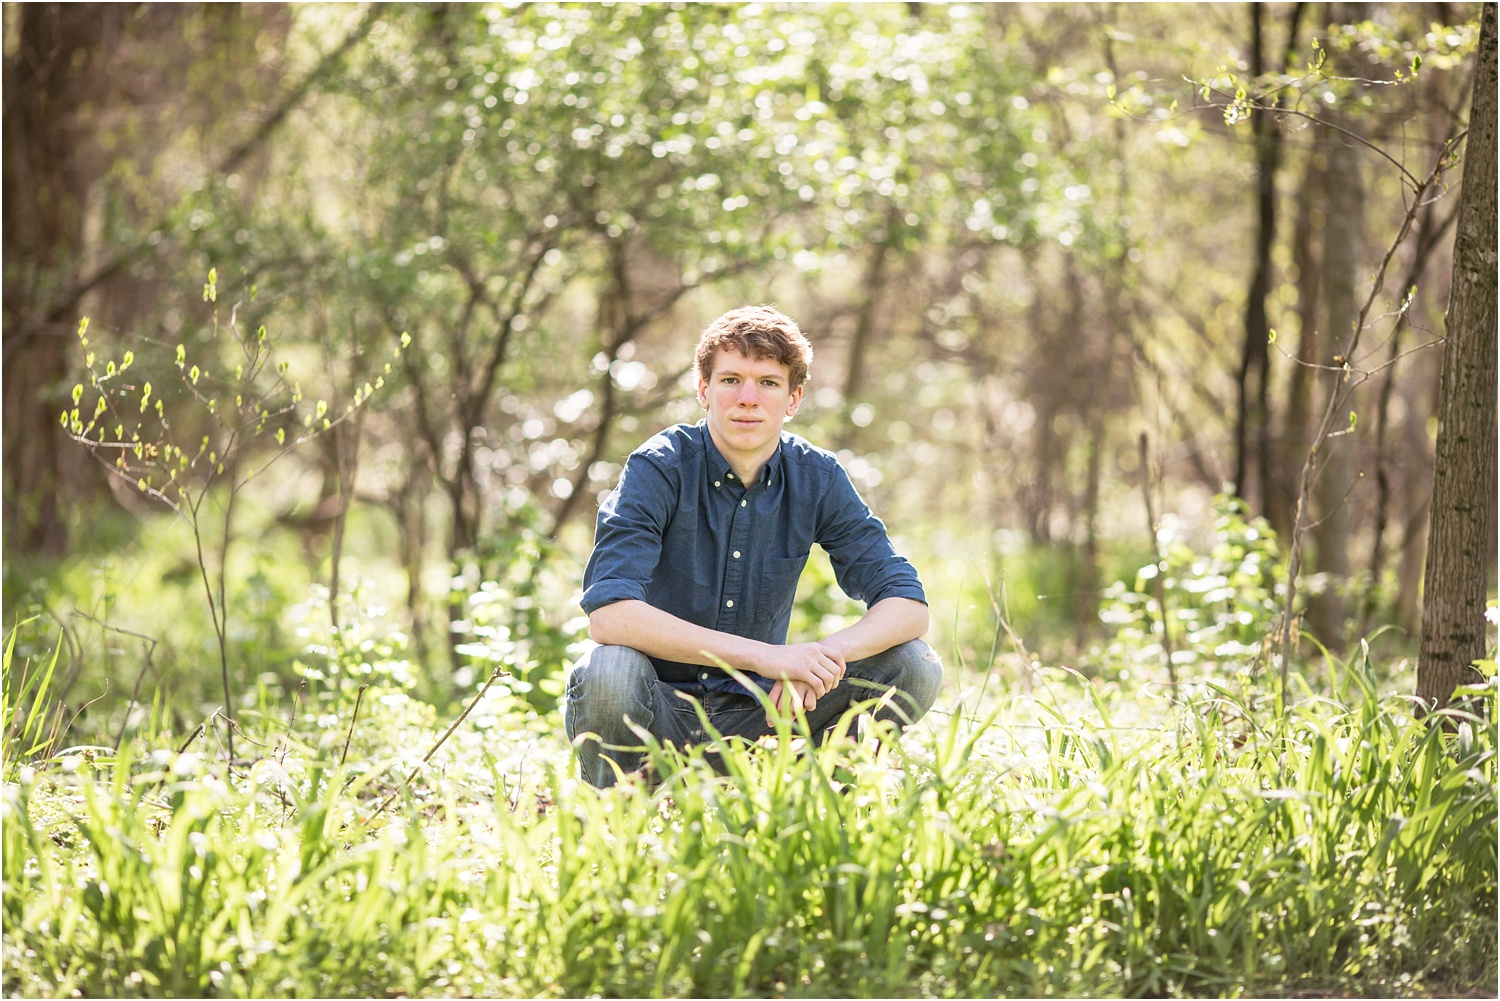 Wildermuth_Senior_Portraits_Wildwood_Bridgewater_Harrisonburg_VA_Photography_0018.jpg